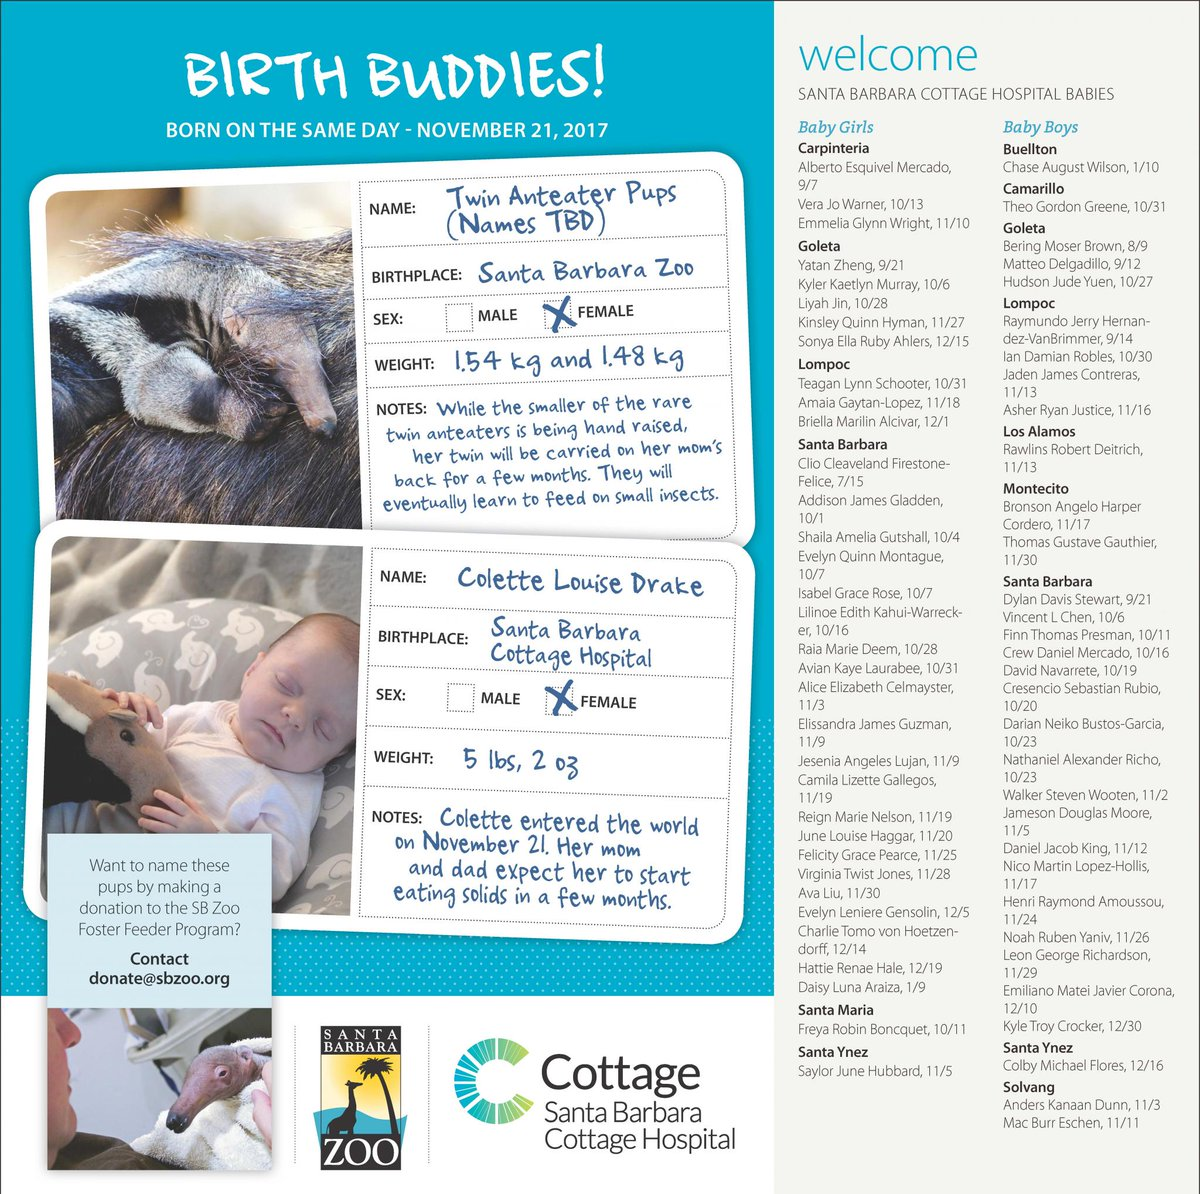 ca0ac6ac4 ... Santa Barbara Zoo on the same day. They will always have a special  birthday bond! Here's a look at the other Cottage Health babies we're  welcoming too!